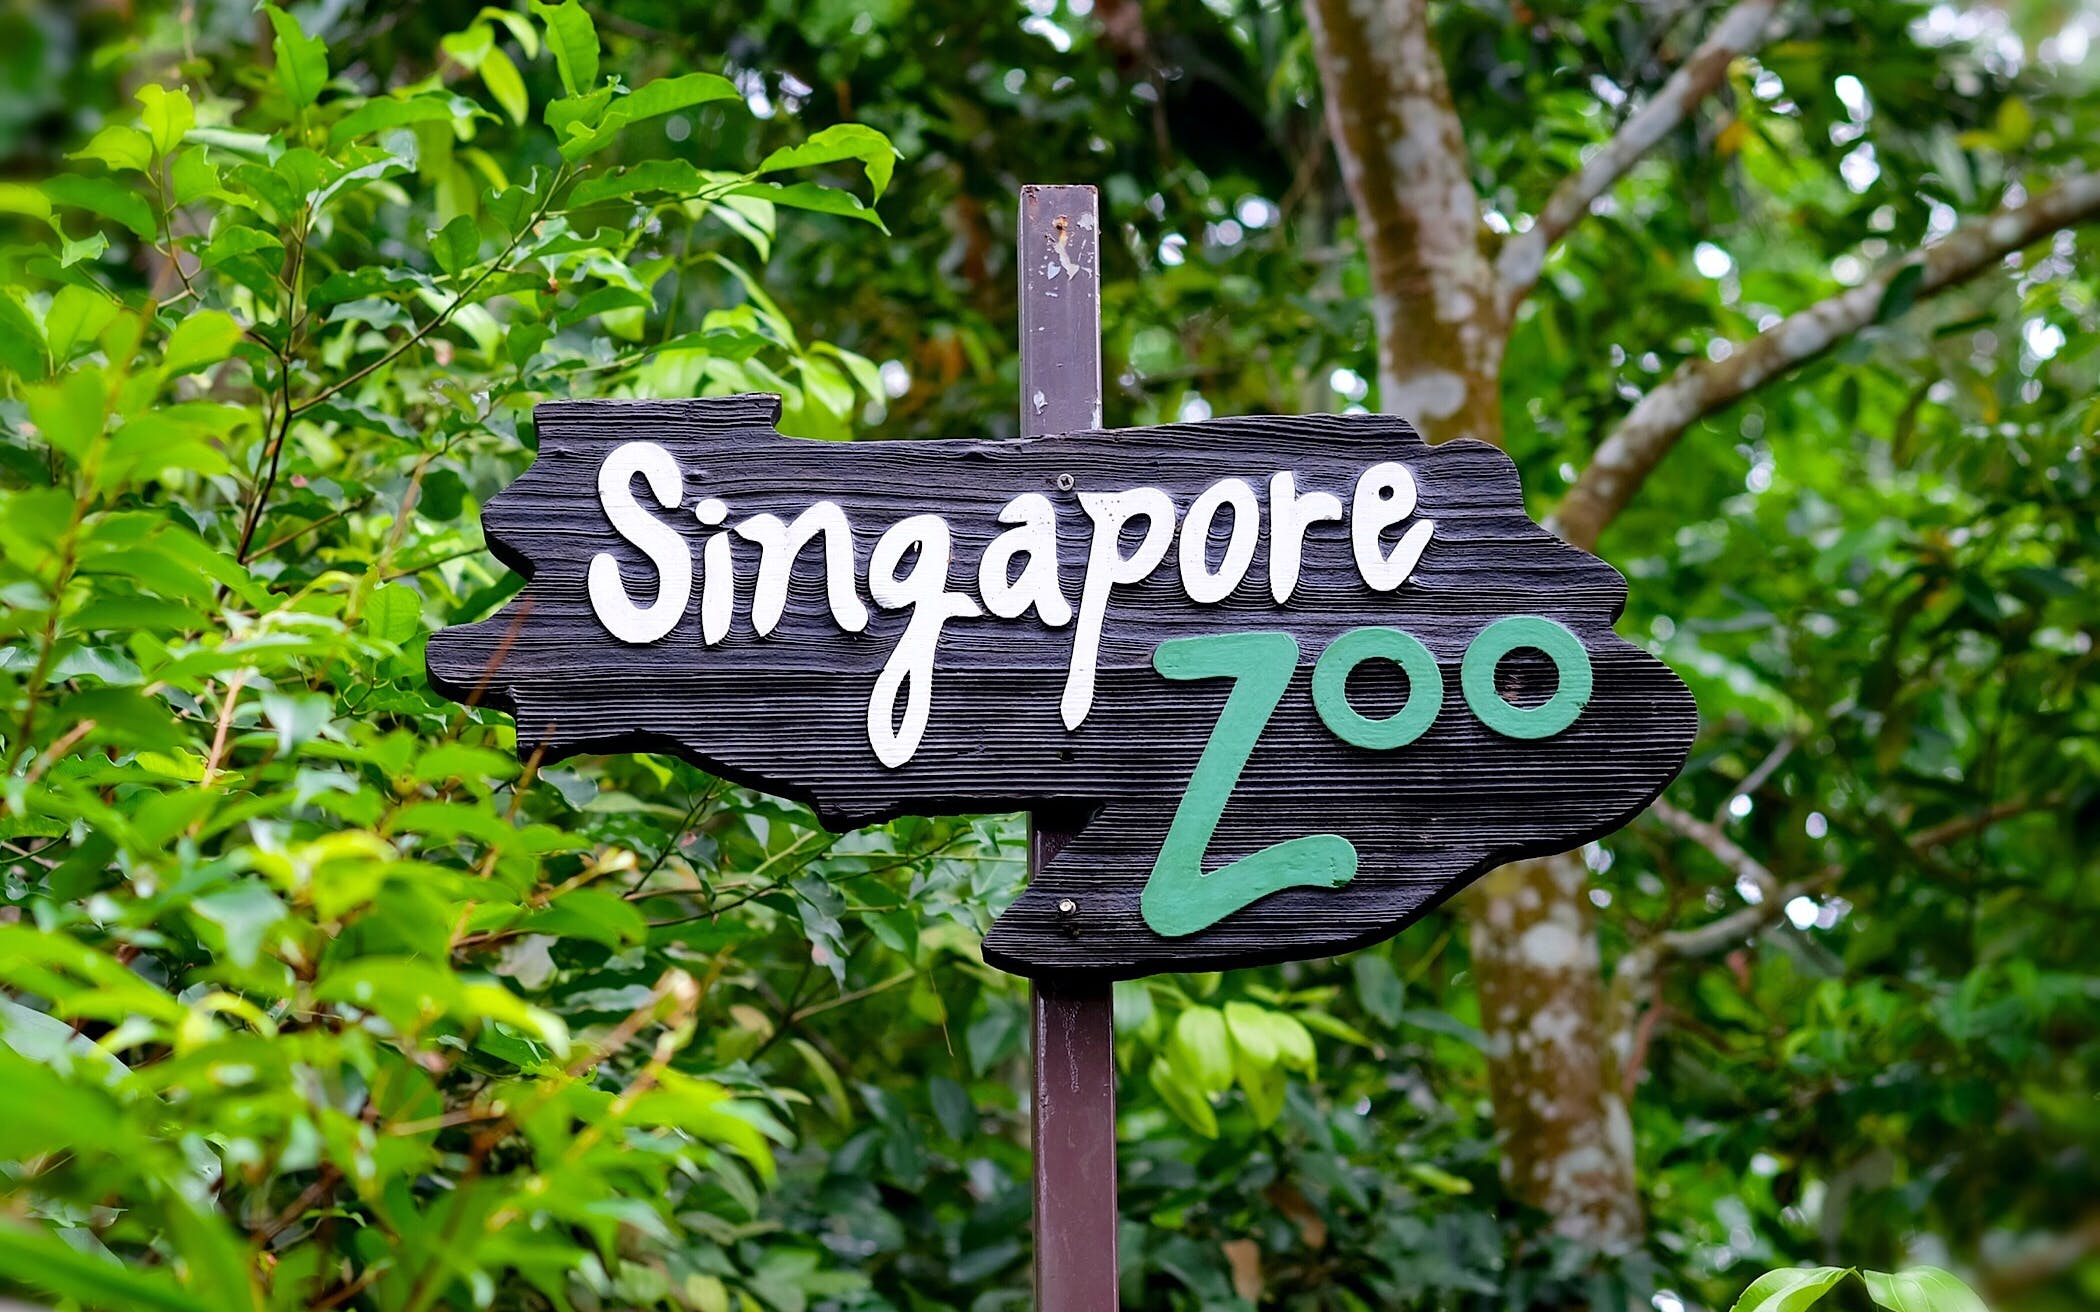 Best Things to do in Singapore - Singapore Zoo - 1